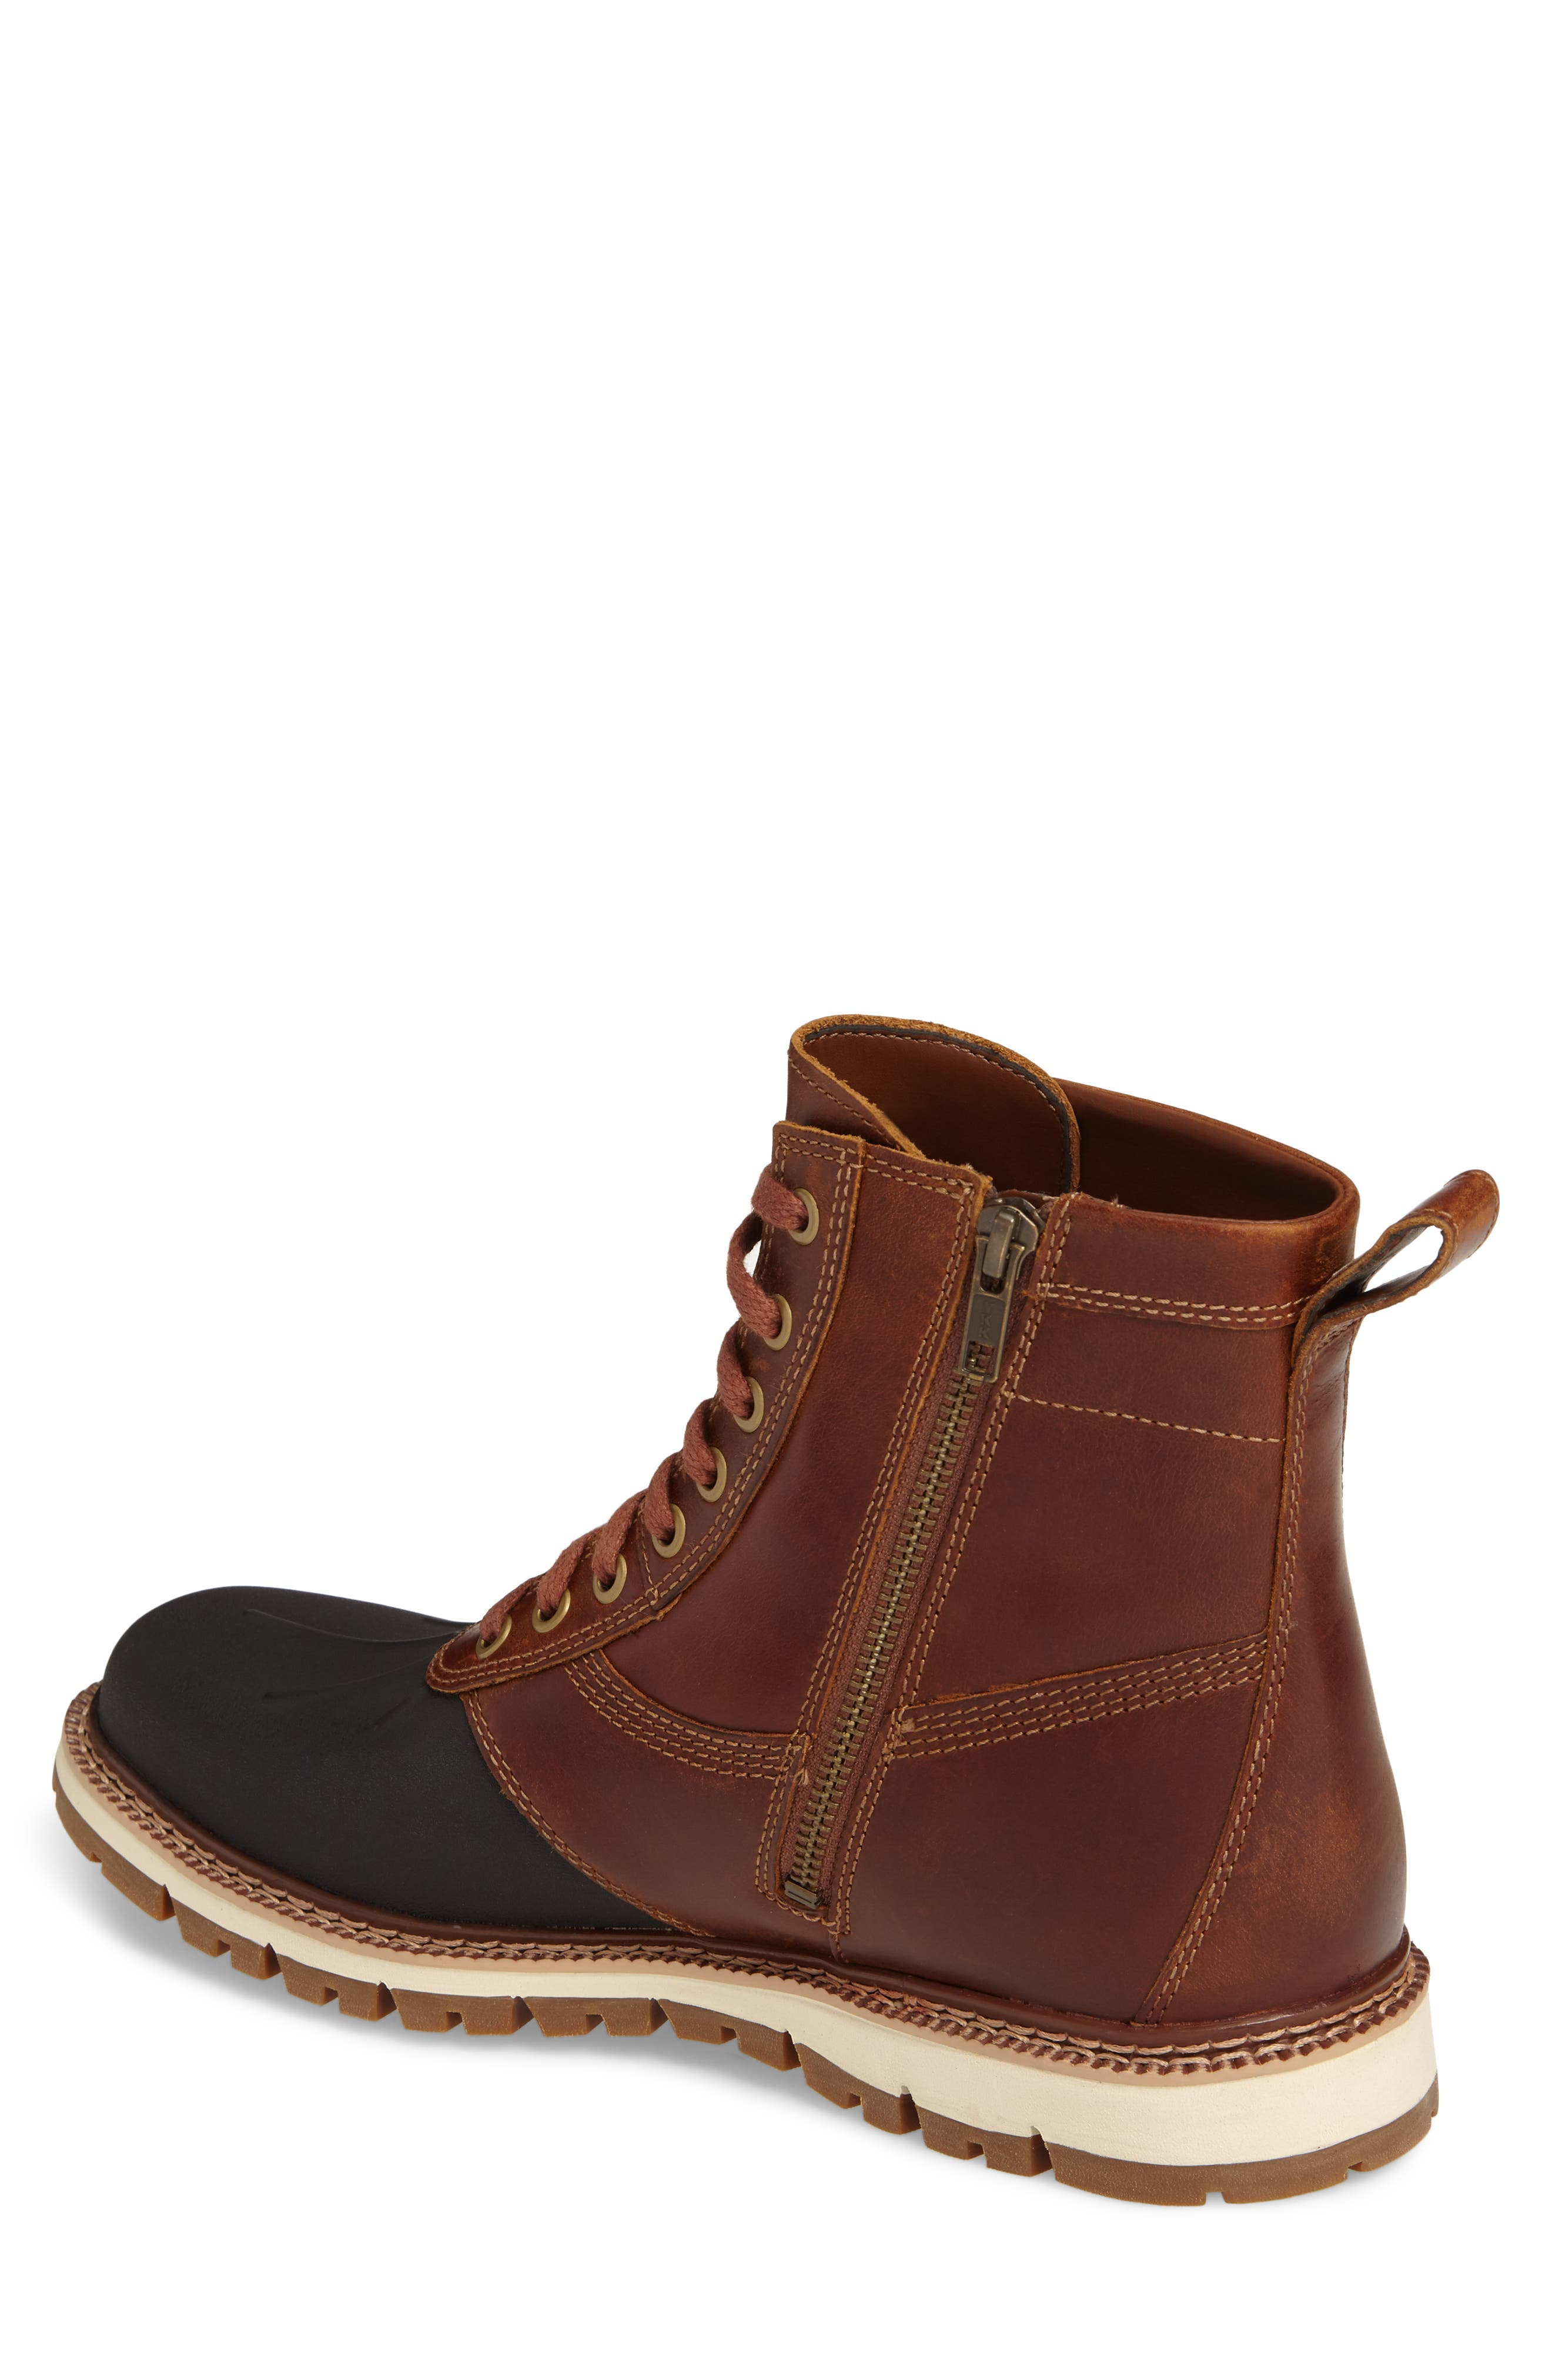 Alternate Image 2  - Timberland 'Britton Hill' Moc Toe Boot (Men)